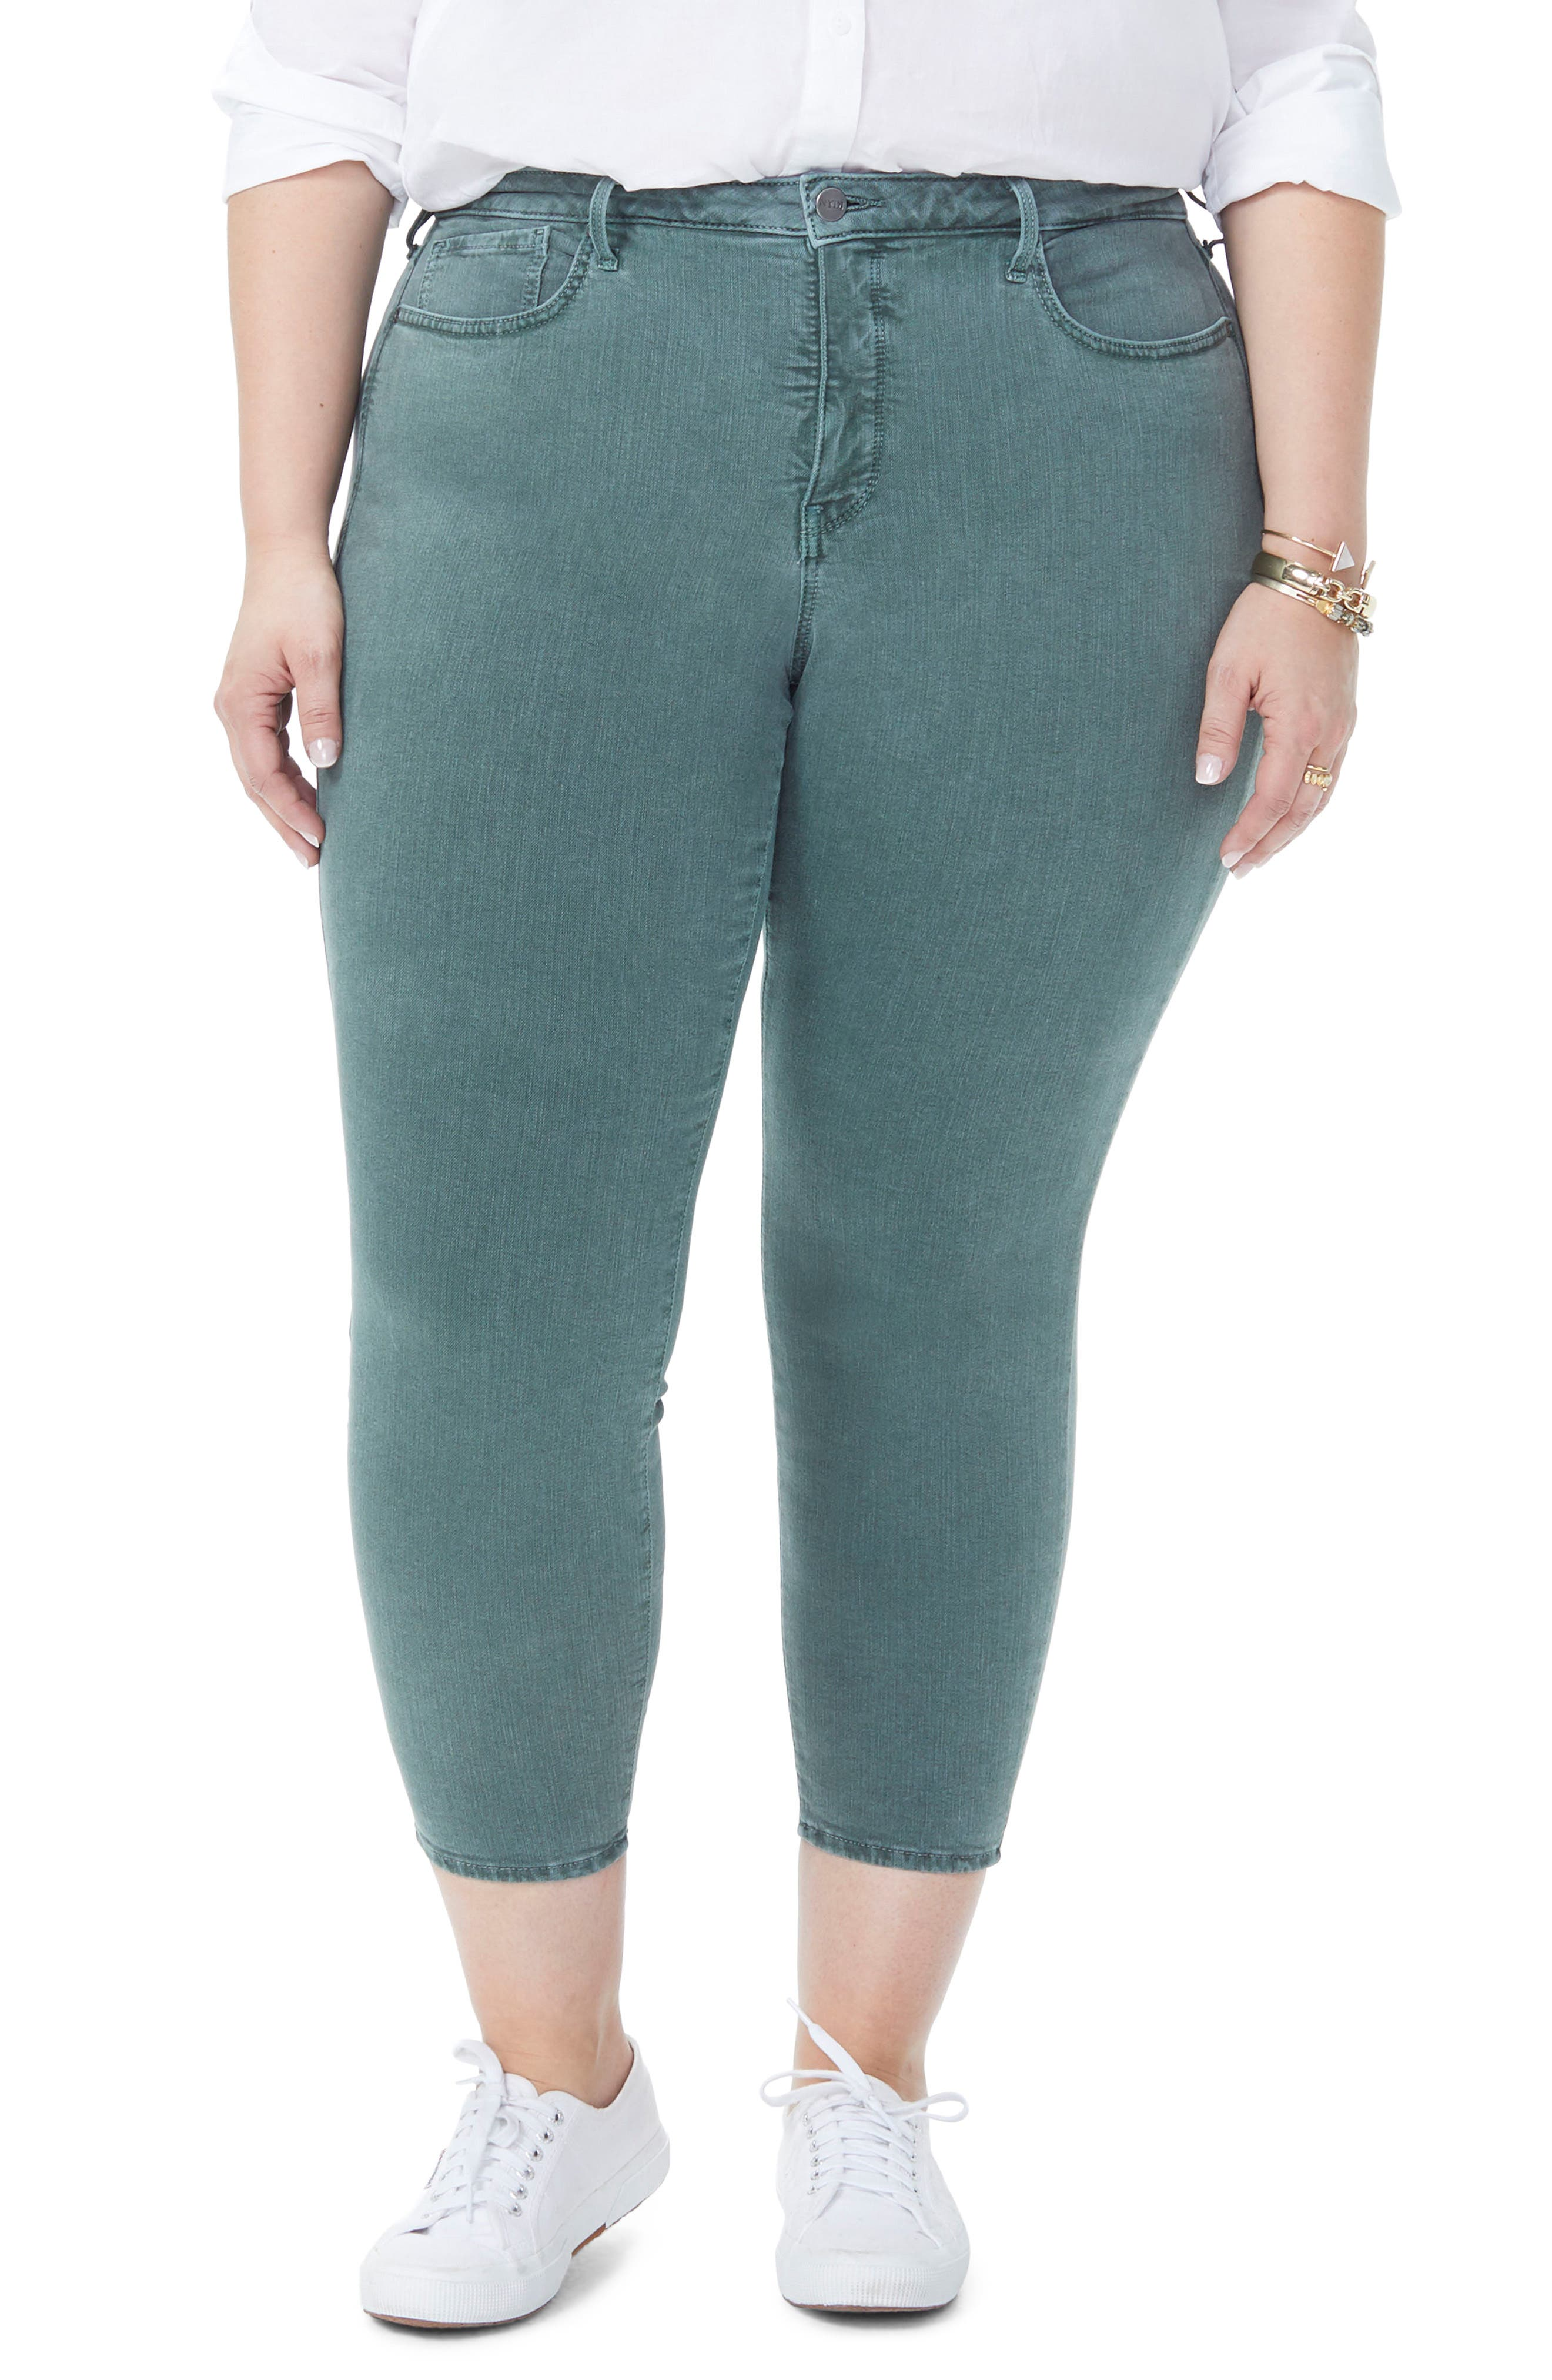 Ami Stretch Ankle Skinny Jeans,                             Main thumbnail 1, color,                             SUGAR PINE